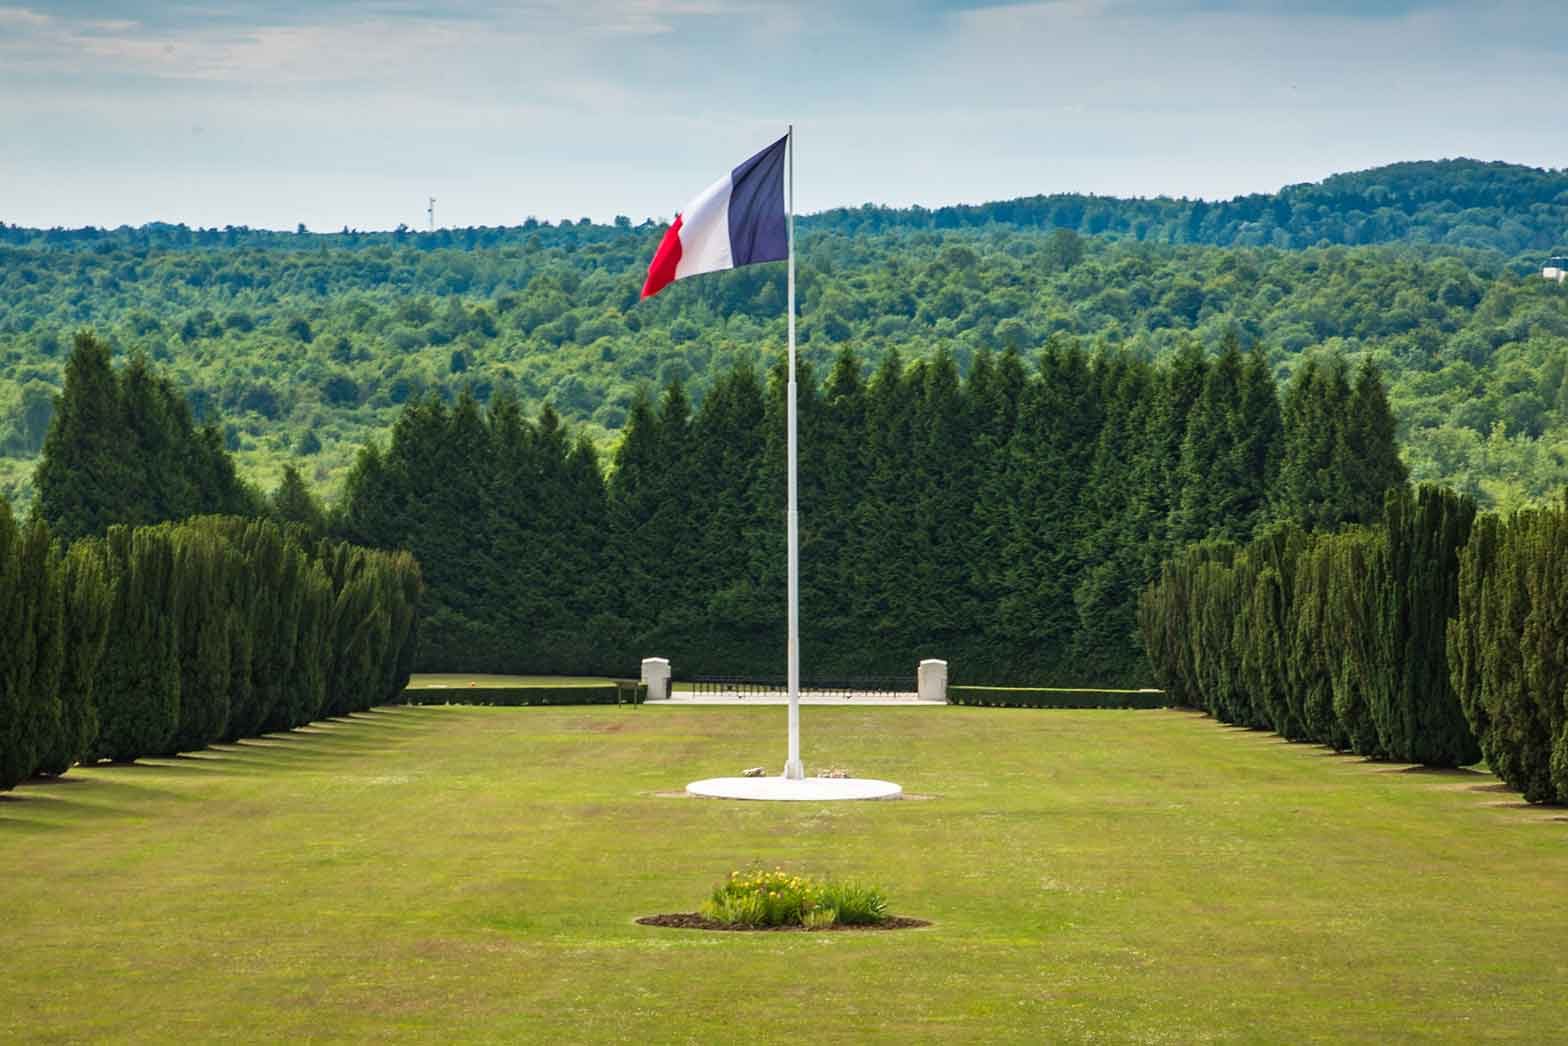 The Douaumont ossuary, Douaumont, France